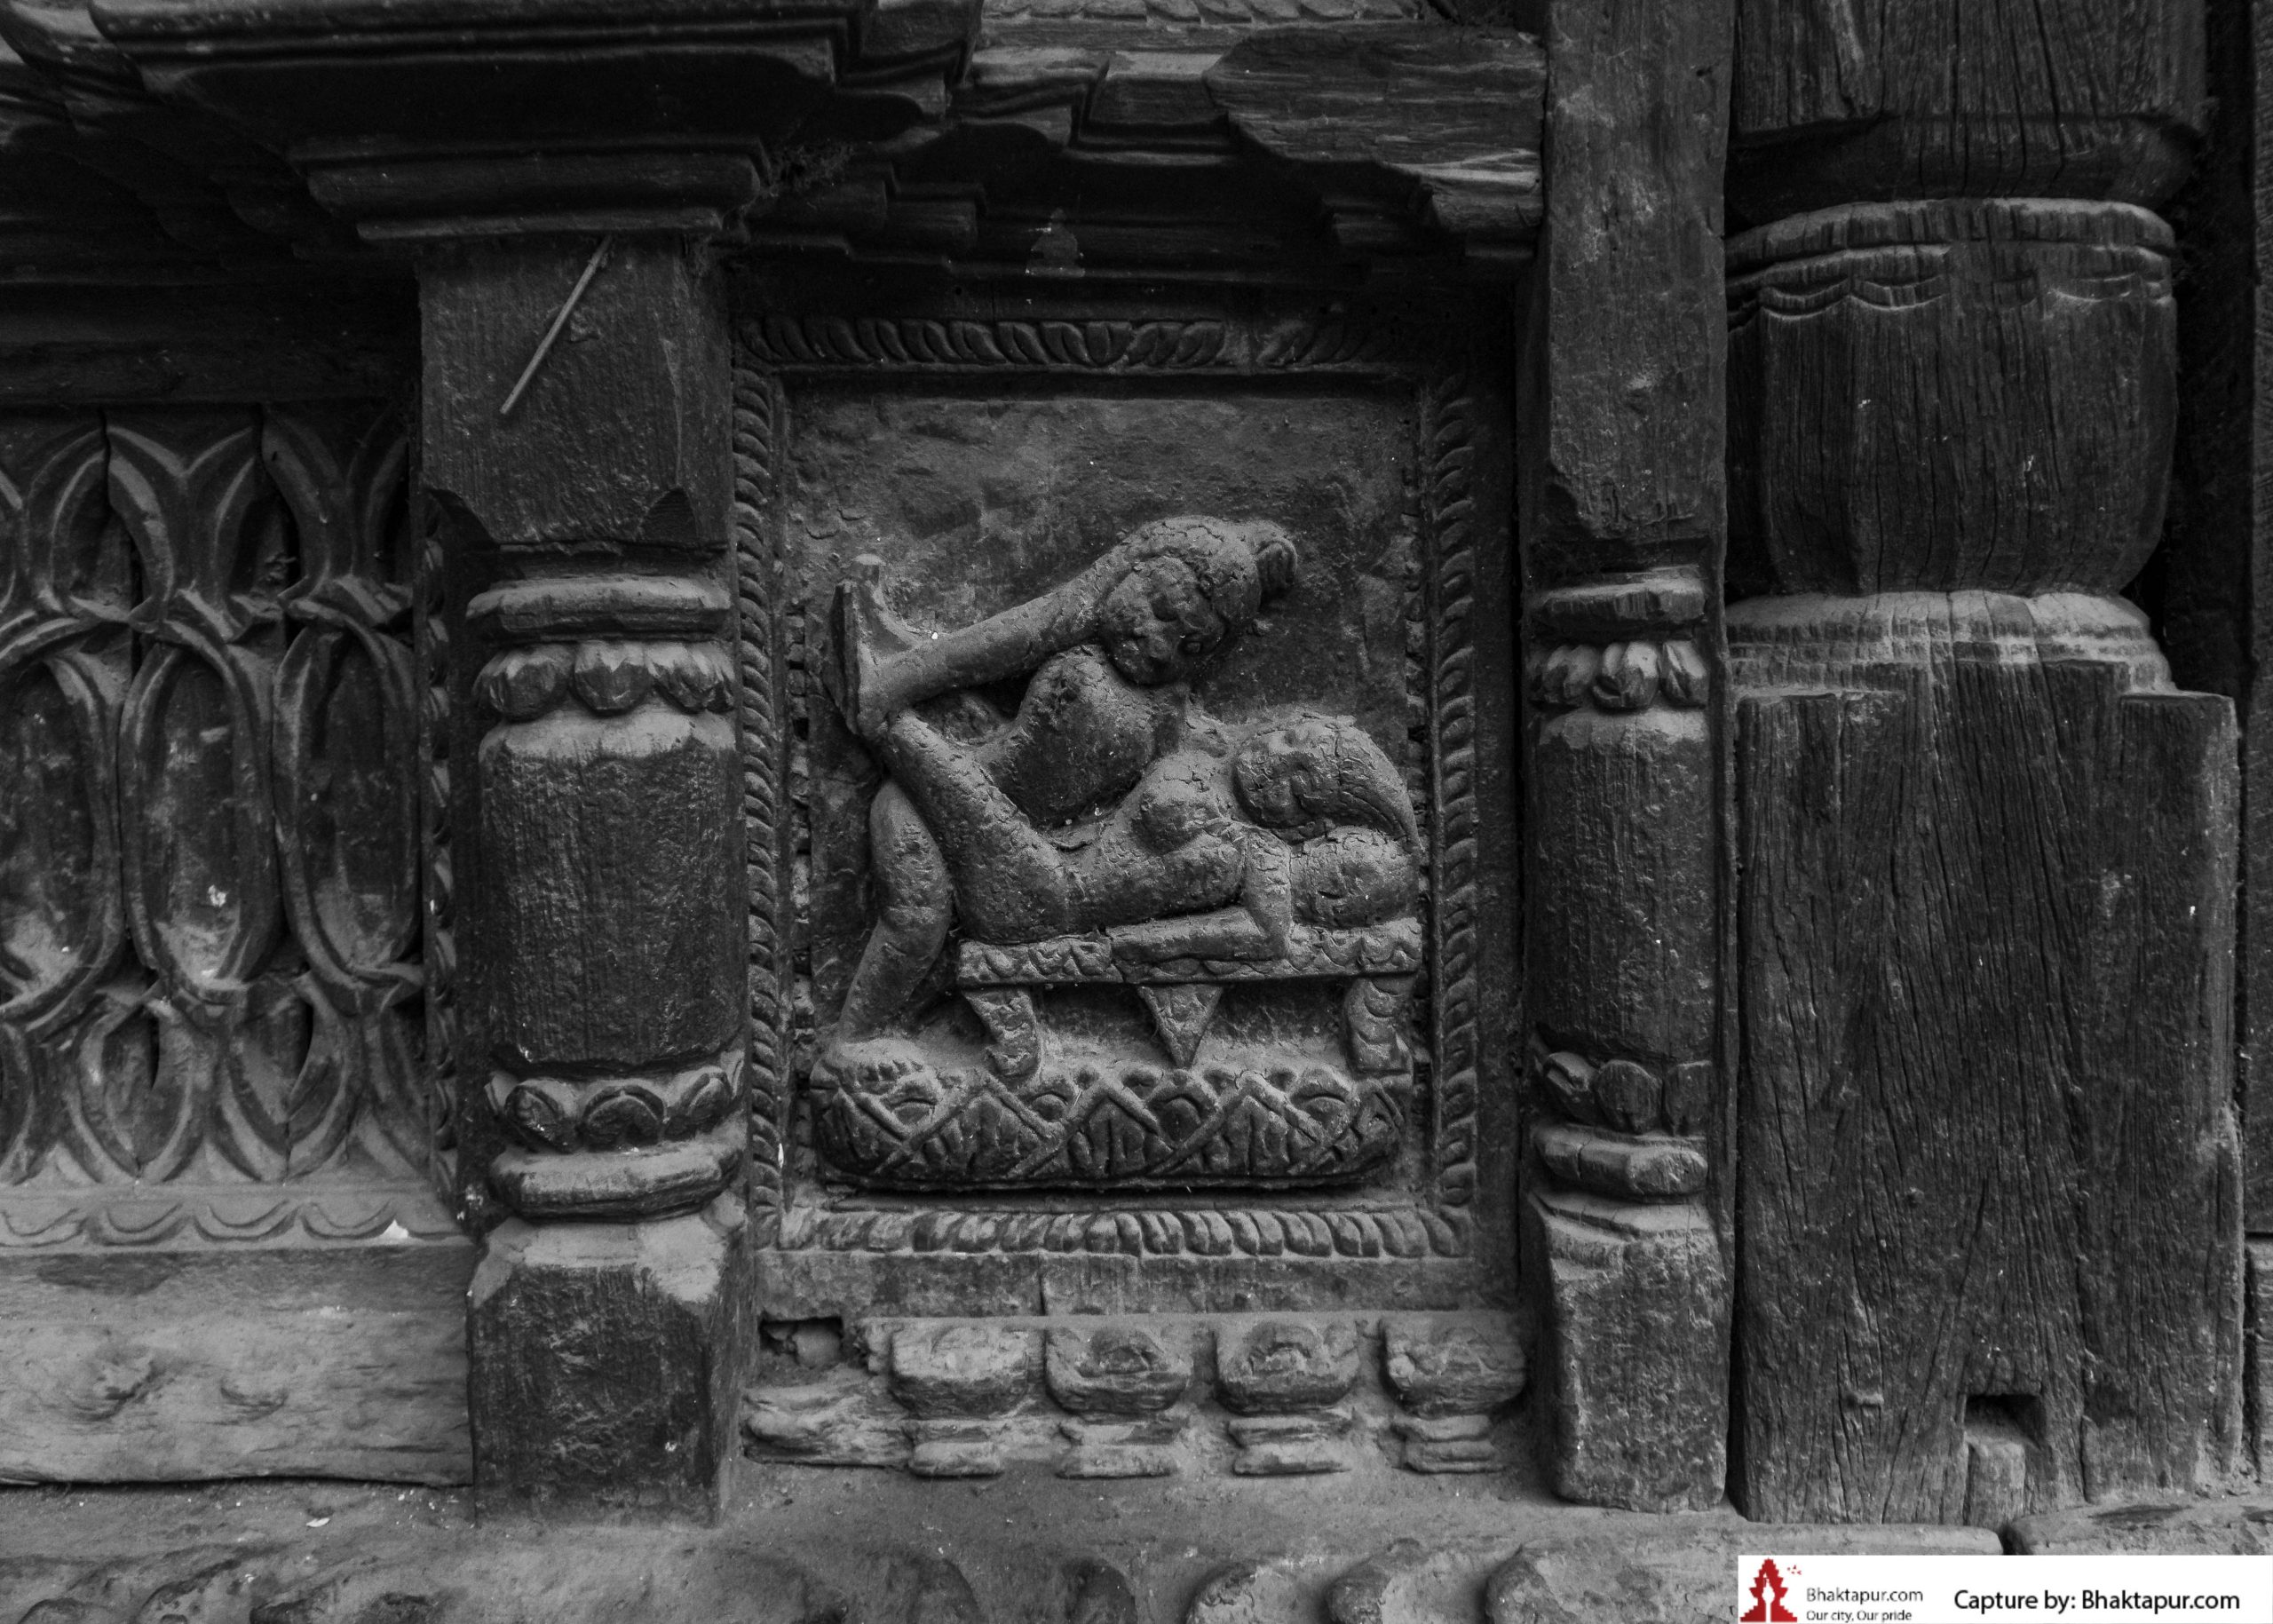 https://www.bhaktapur.com/wp-content/uploads/2021/08/erotic-carving-2-of-137-scaled.jpg